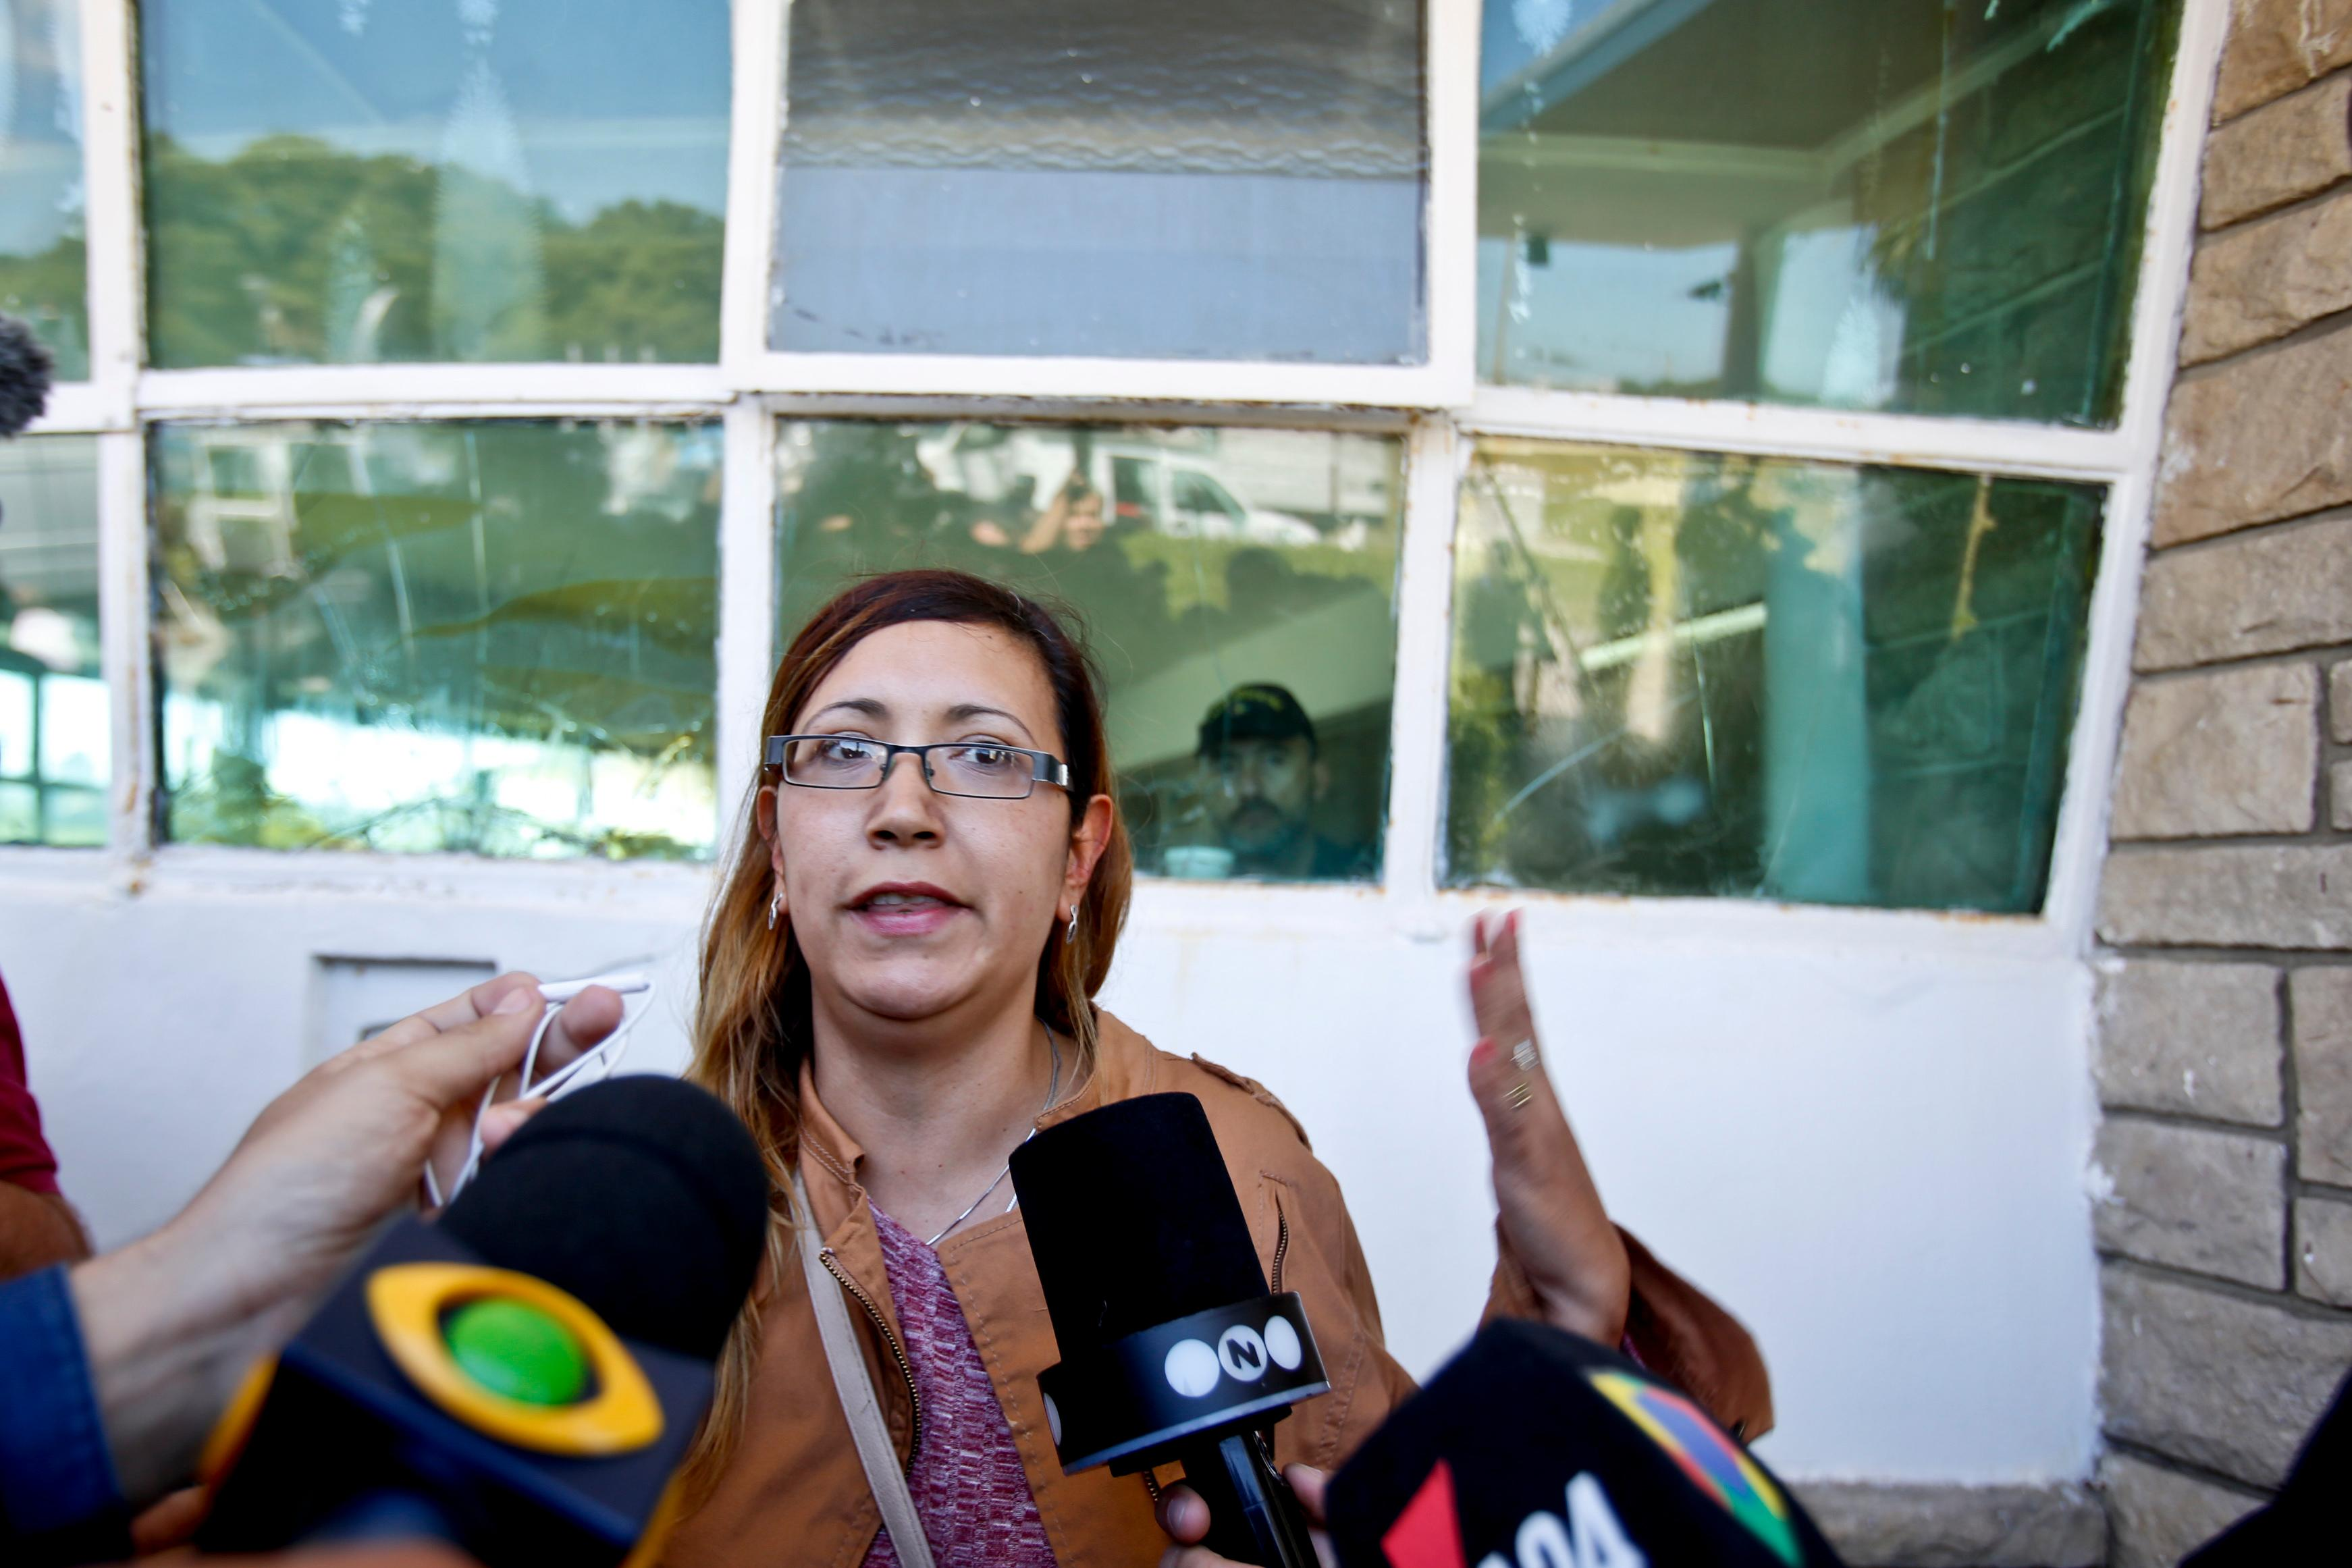 "Itati Leguizamon, wife of submarine crew member German Suarez, speaks with the media after relatives were told that a sound detected during the search for the ARA San Juan submarine is consistent with that of an explosion, at the Mar de Plata Naval Base, in Argentina, Thursday, Nov. 23, 2017.  ""They sent a piece of crap to sail,"" said Leguizamon. ""They inaugurated a submarine with a coat of paint and a flag in 2014, but without any equipment inside. The navy is to blame for its 15 years of abandonment."" (AP Photo/Esteban Felix)"